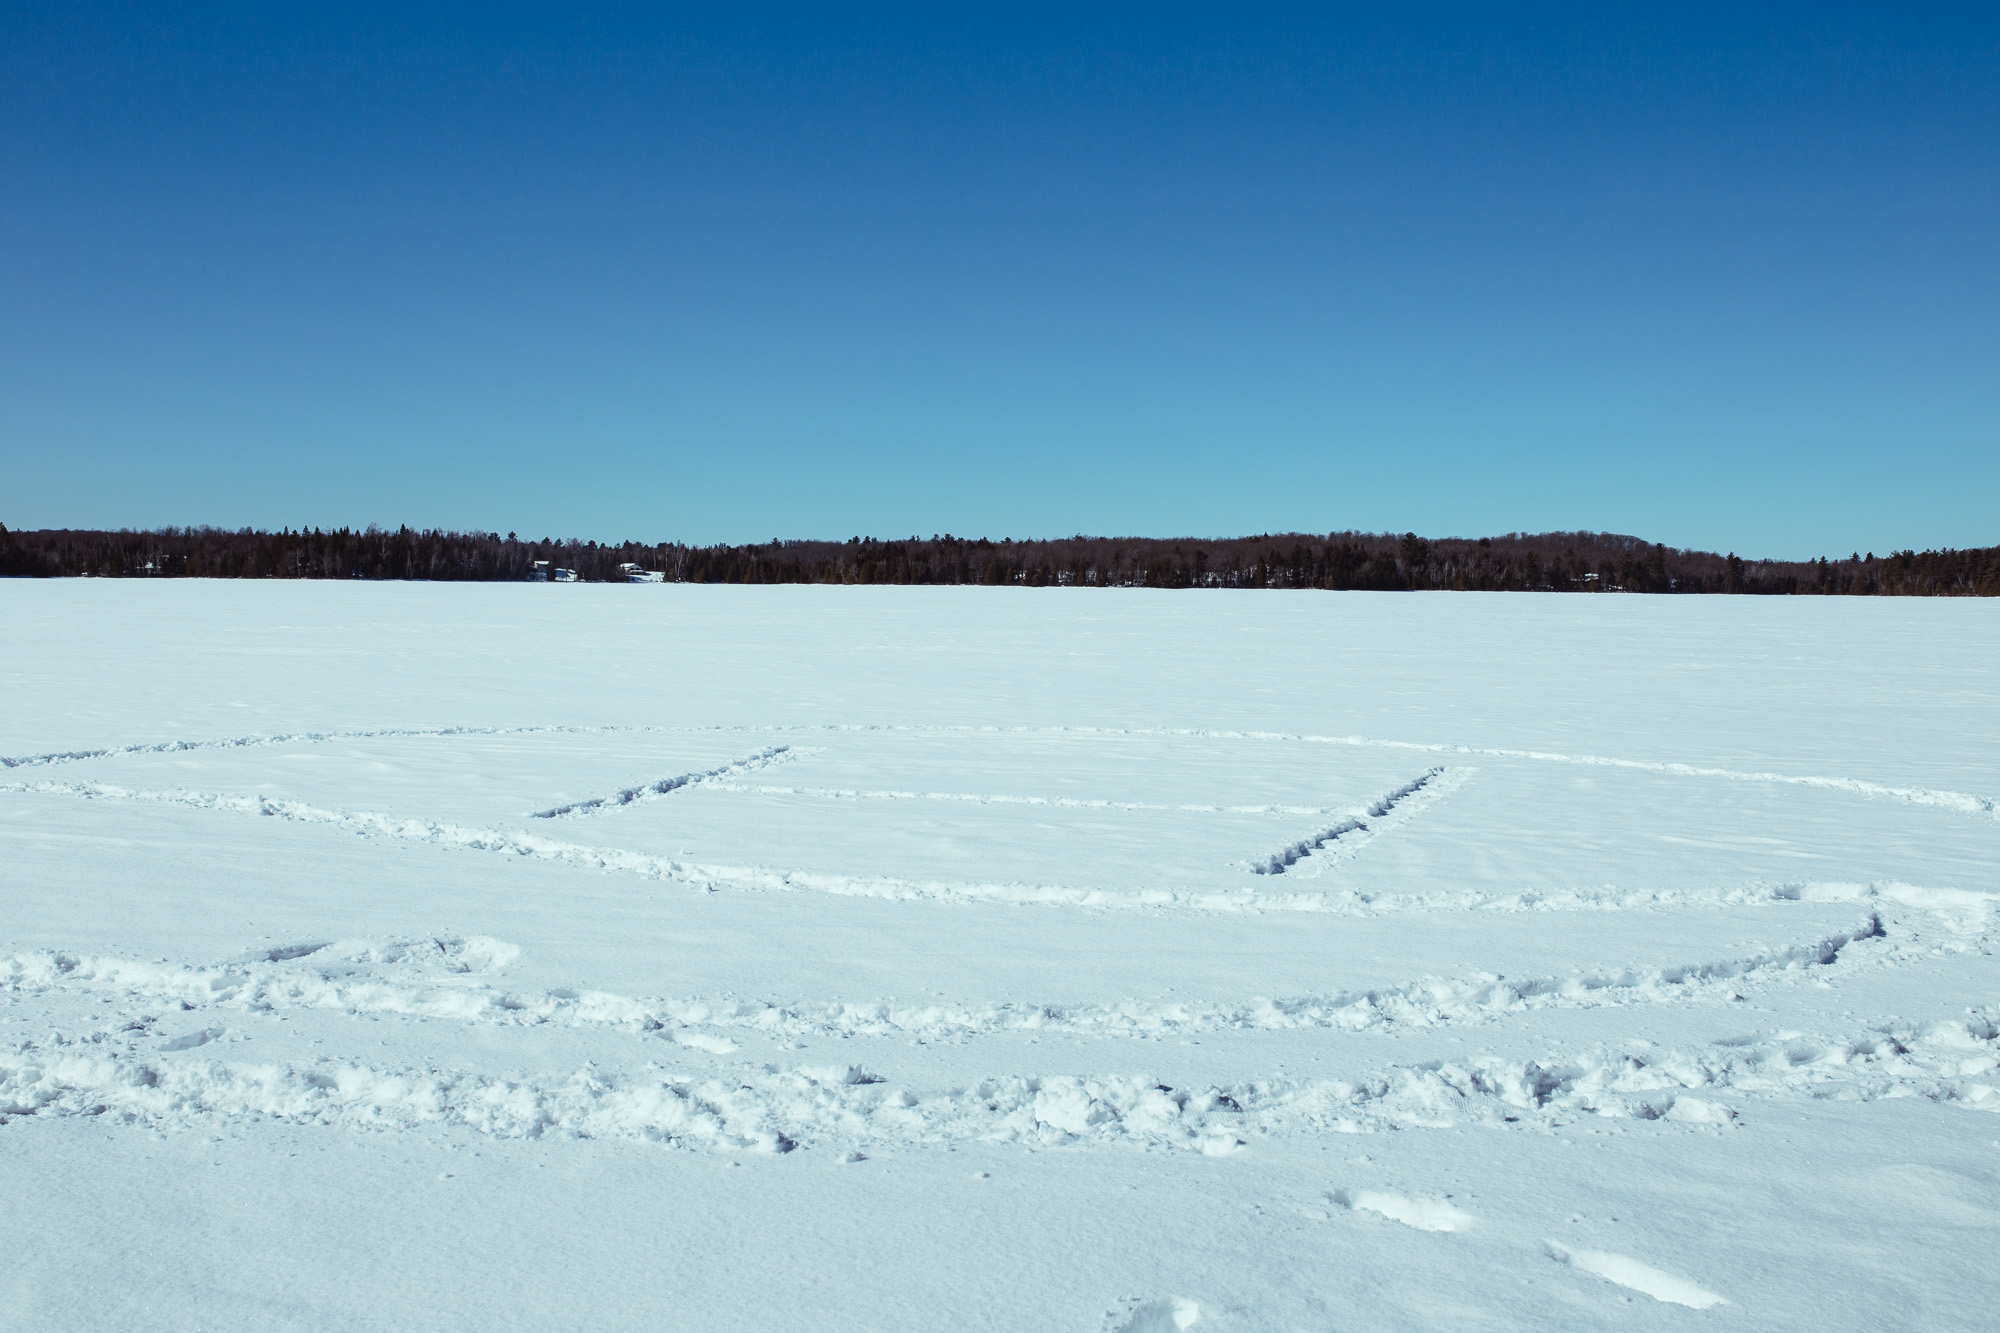 Drawing in snow on lake